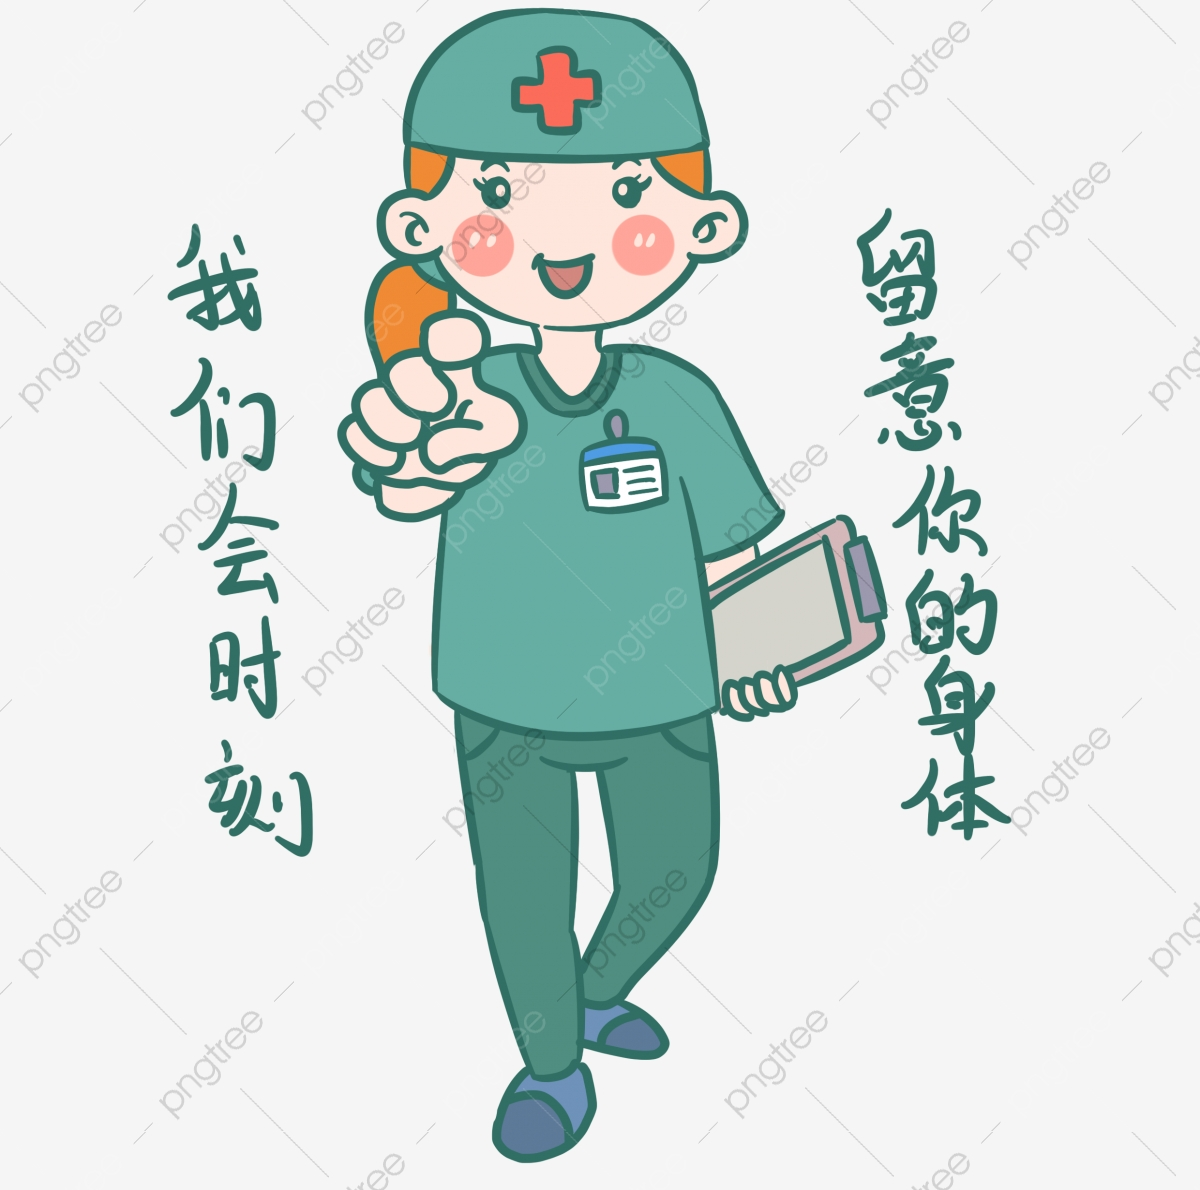 Medical Figure Emoticon Package We Will Always Pay Attention To Your Body Illustration Medical Character Expression Pack Rescue Health Care Png Transparent Clipart Image And Psd File For Free Download